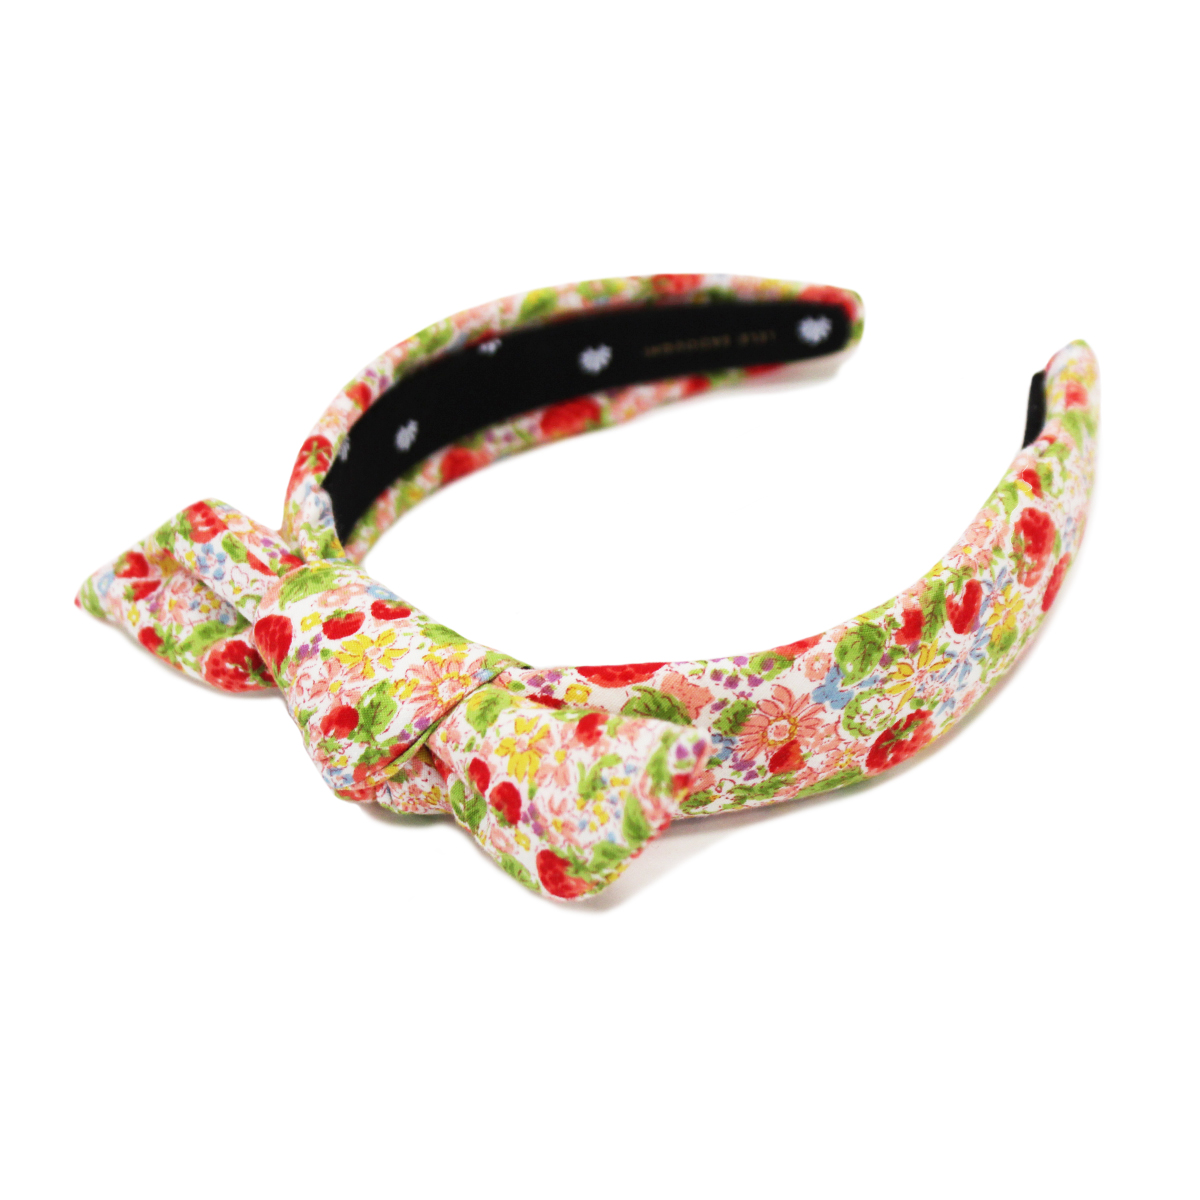 Lele Sadoughi Petite Knotted Headband in Exclusive Strawberry Print